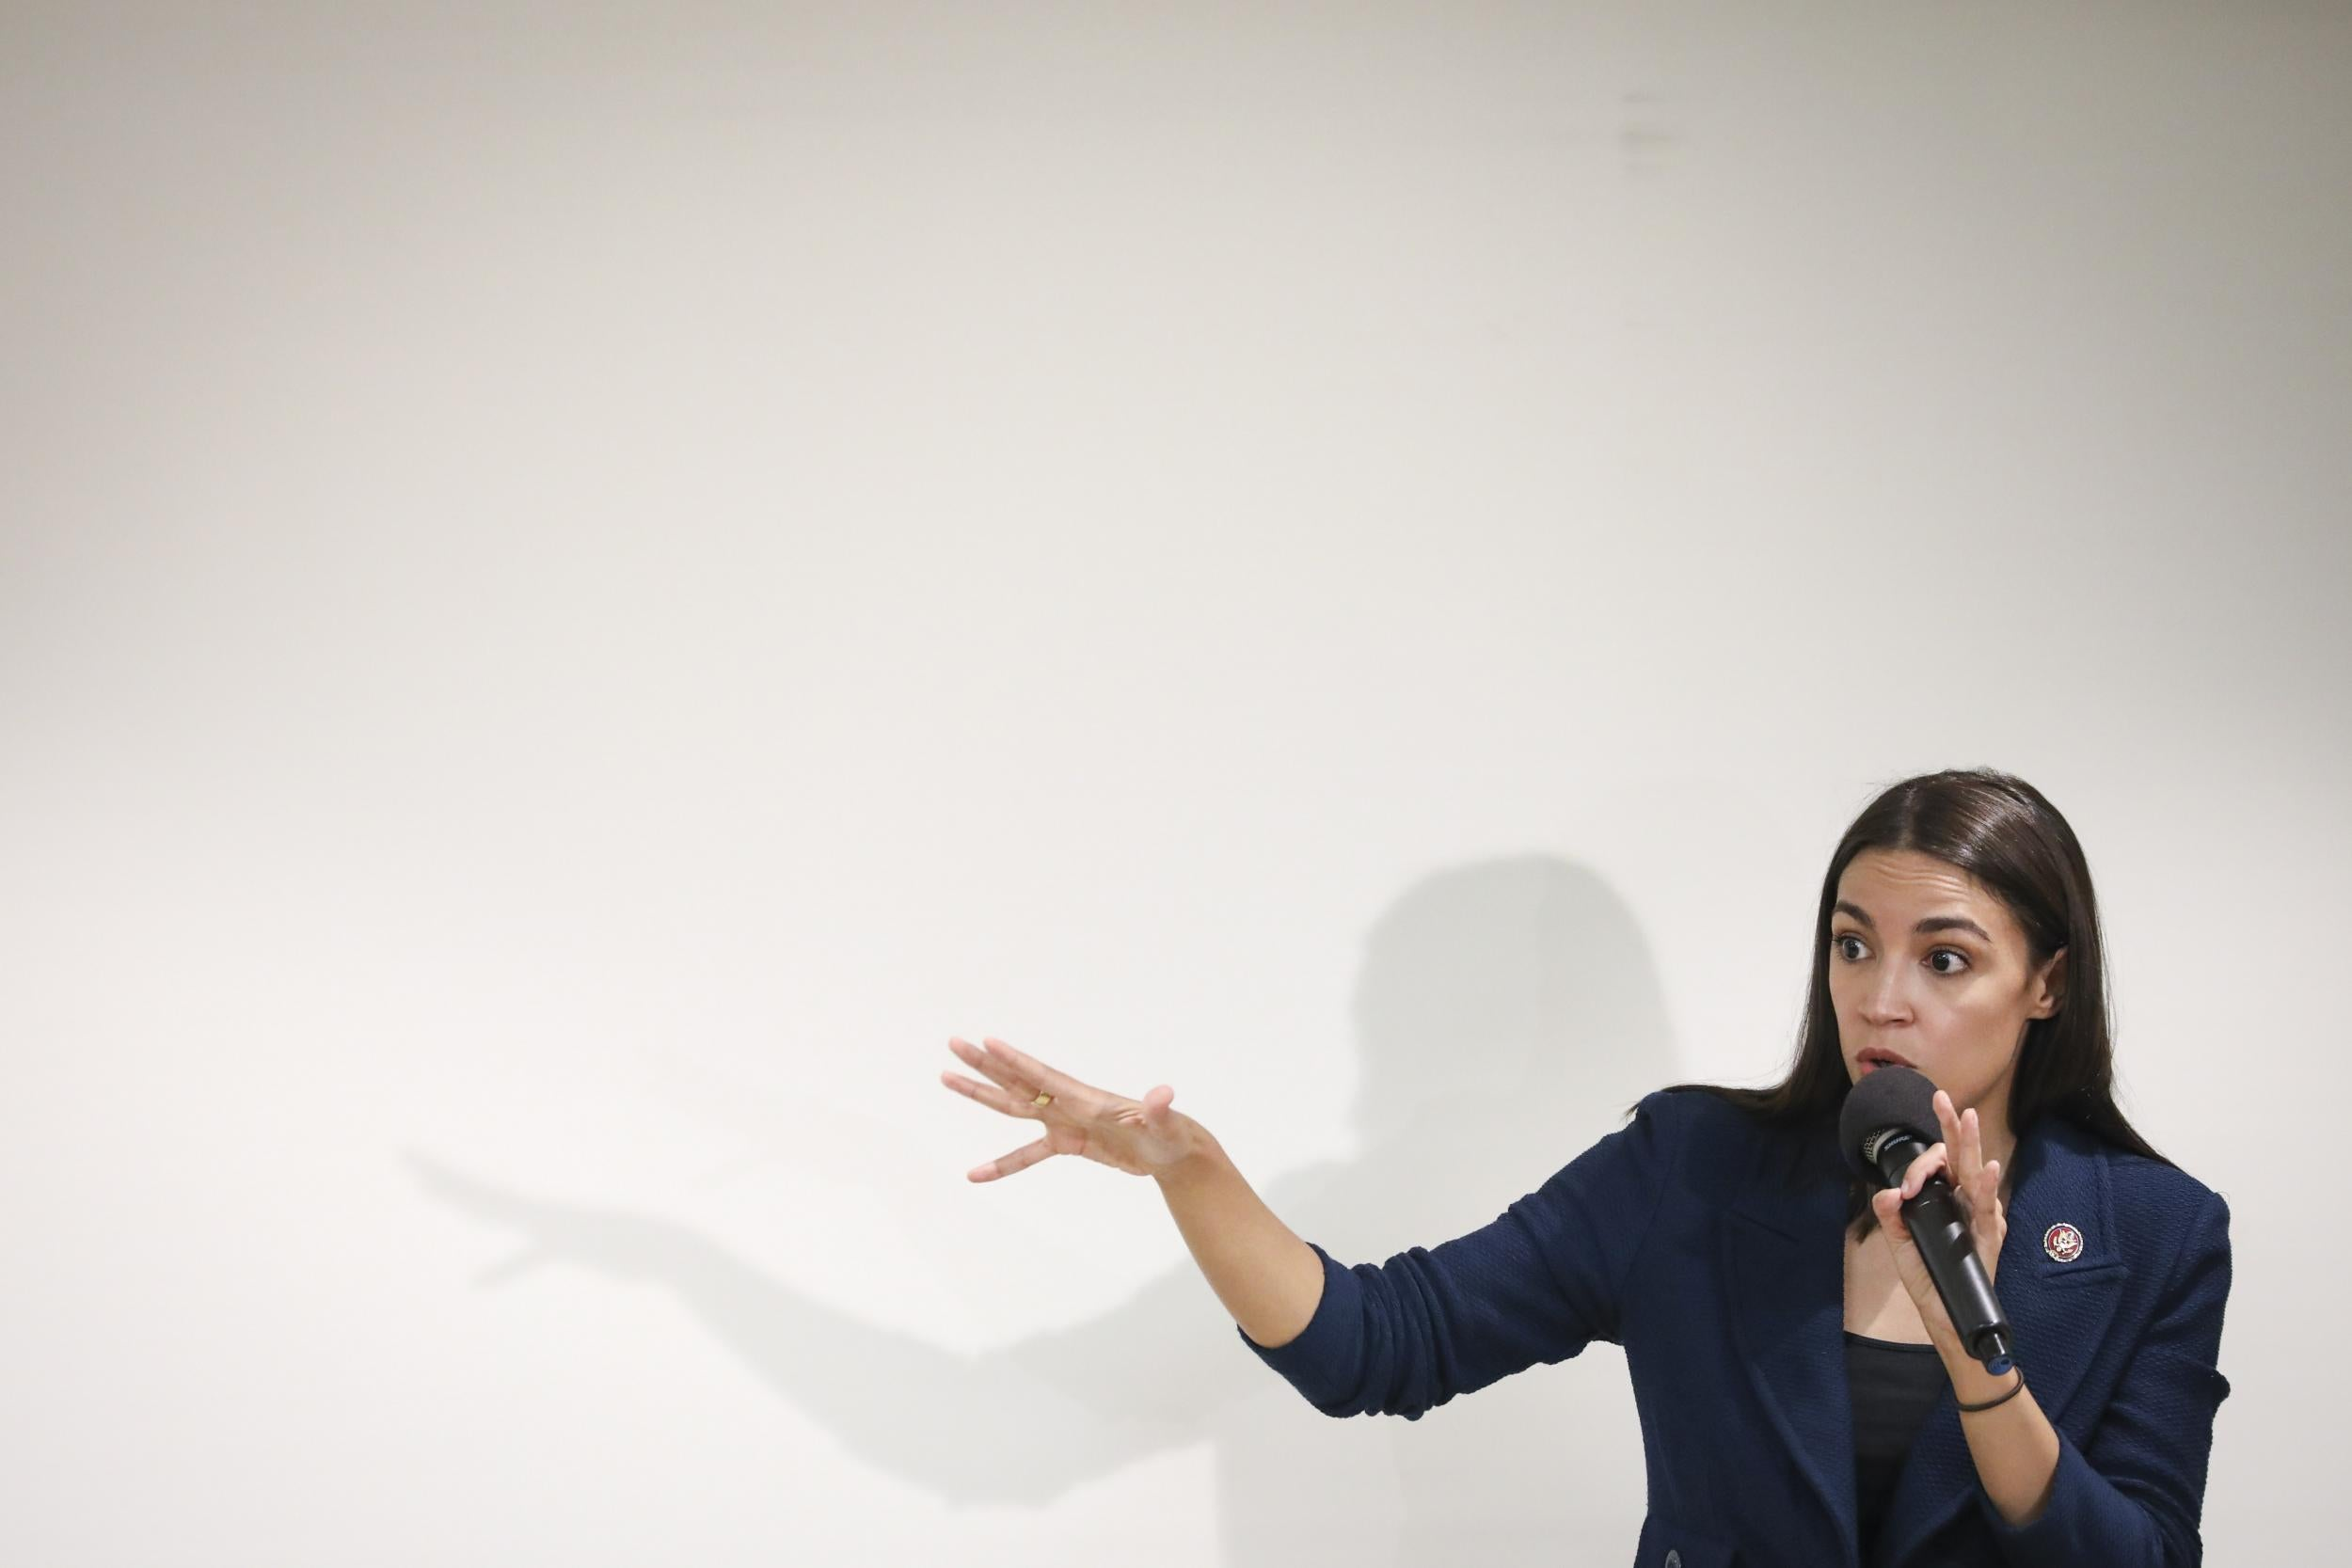 Interruption At Aoc Town Hall Revealed To Be A Pro Trump Stunt The Independent The Independent